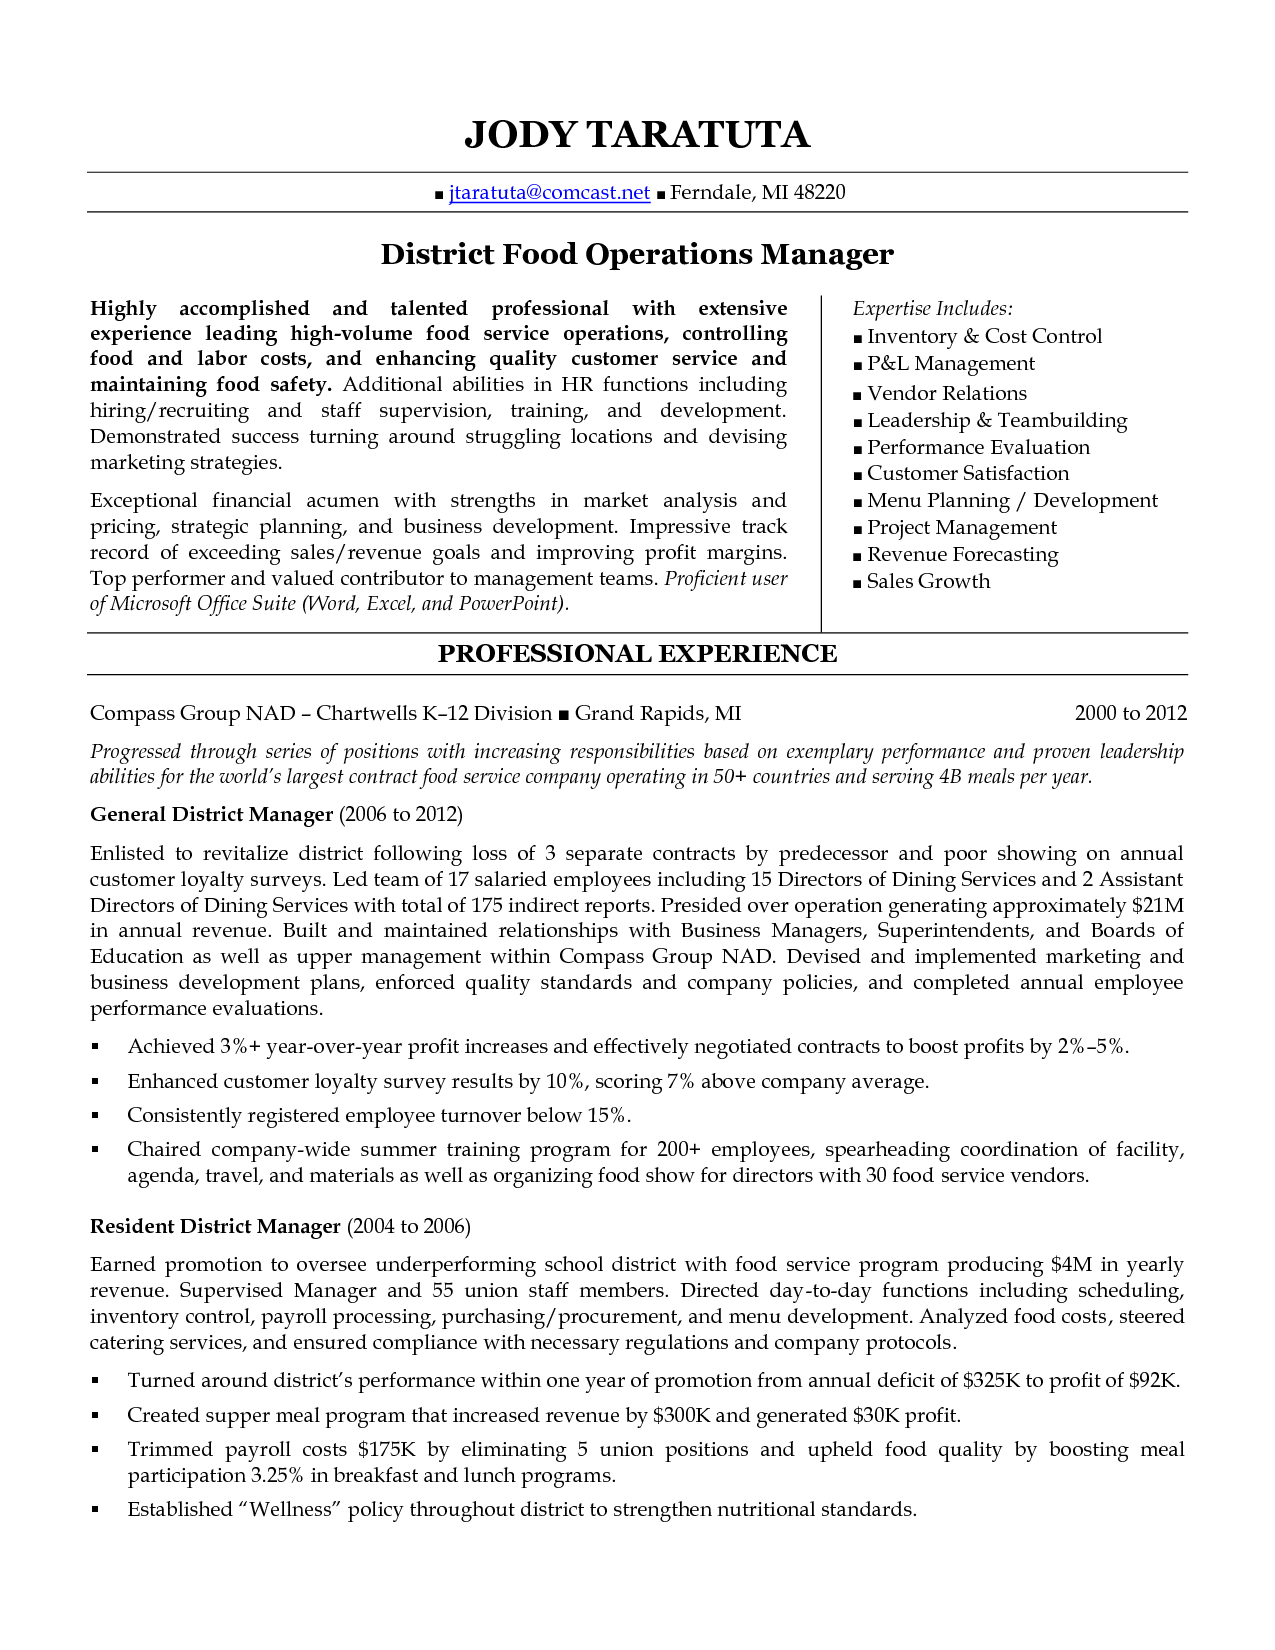 Inventory Management Resume District Manager Resume  District Food Operations Manager In